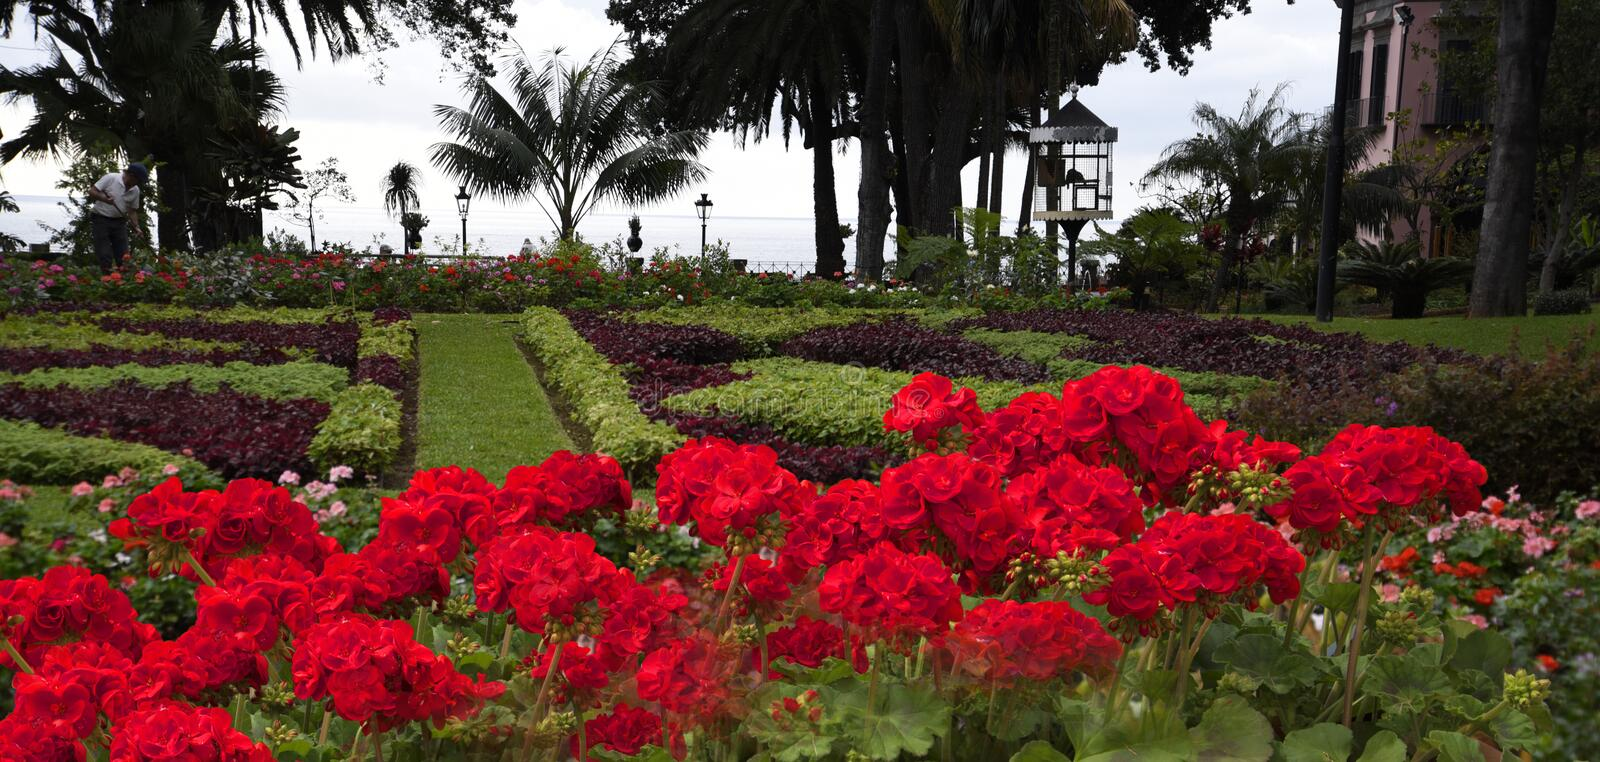 The Beautiful Garden of the Governors Palace in Funchal on the island of Madeira Portugal. For just one euro you can come into and photograph the Lovely Garden stock photos